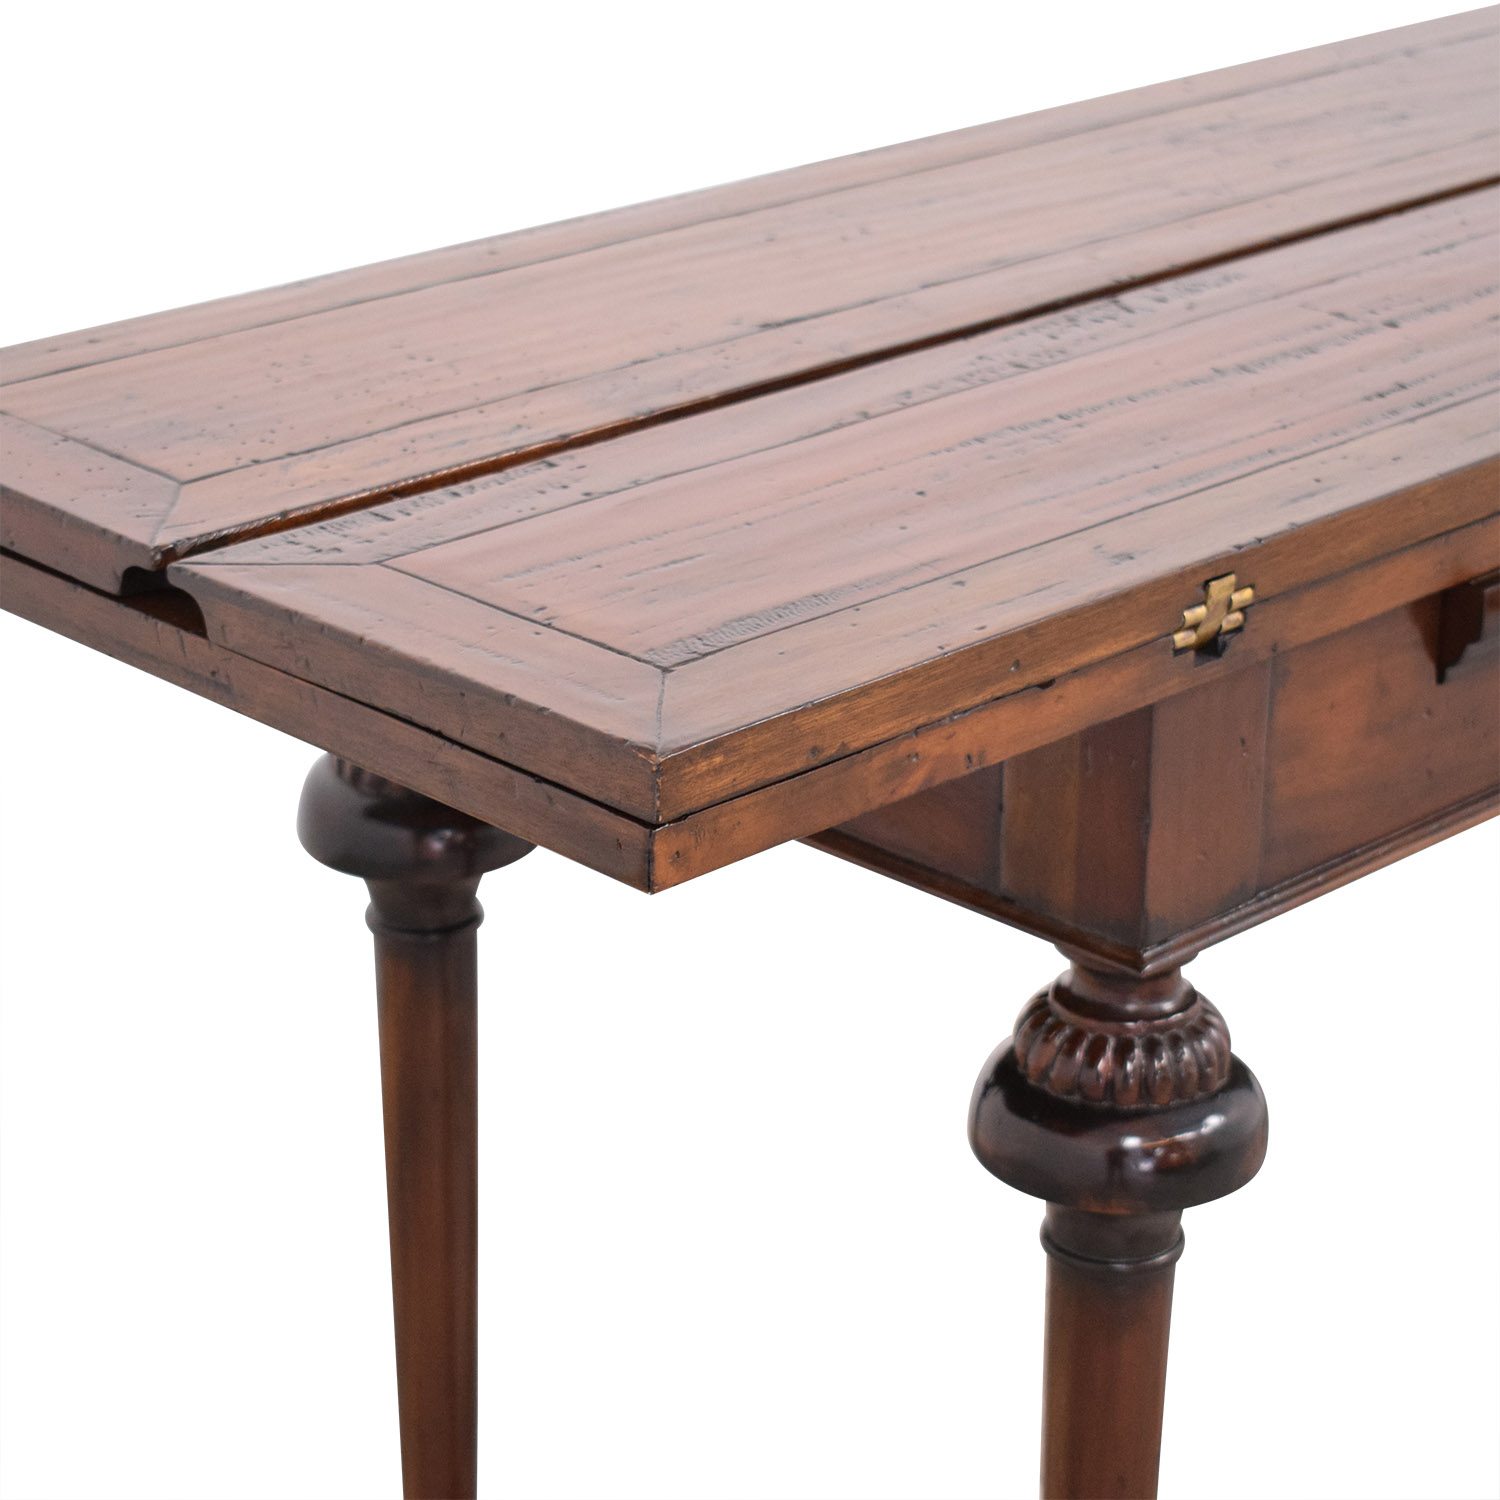 Harden Harden Collapsible Console Table nj